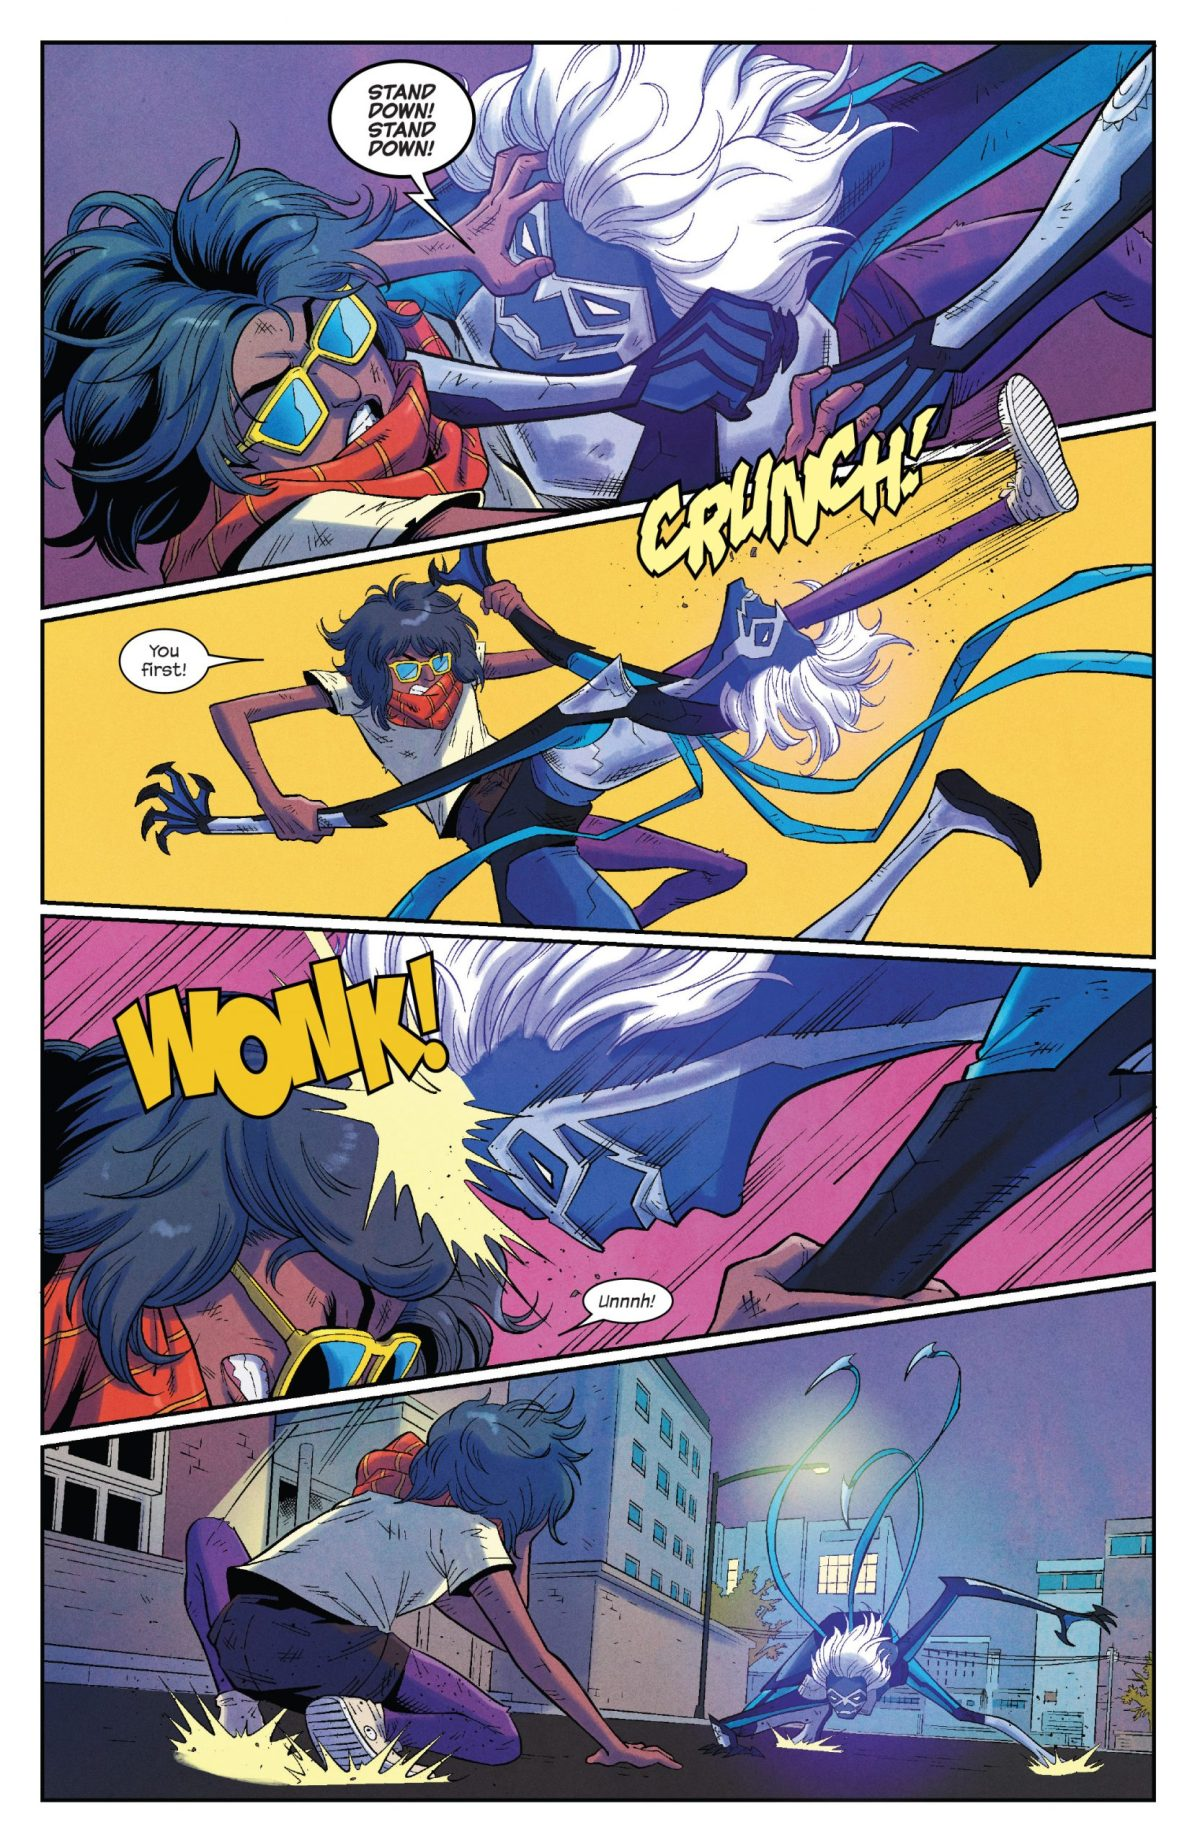 The Magnificent Ms Marvel #11: Page 14, Kamala kicks Stormranger in the face and Stormranger headbutts her.